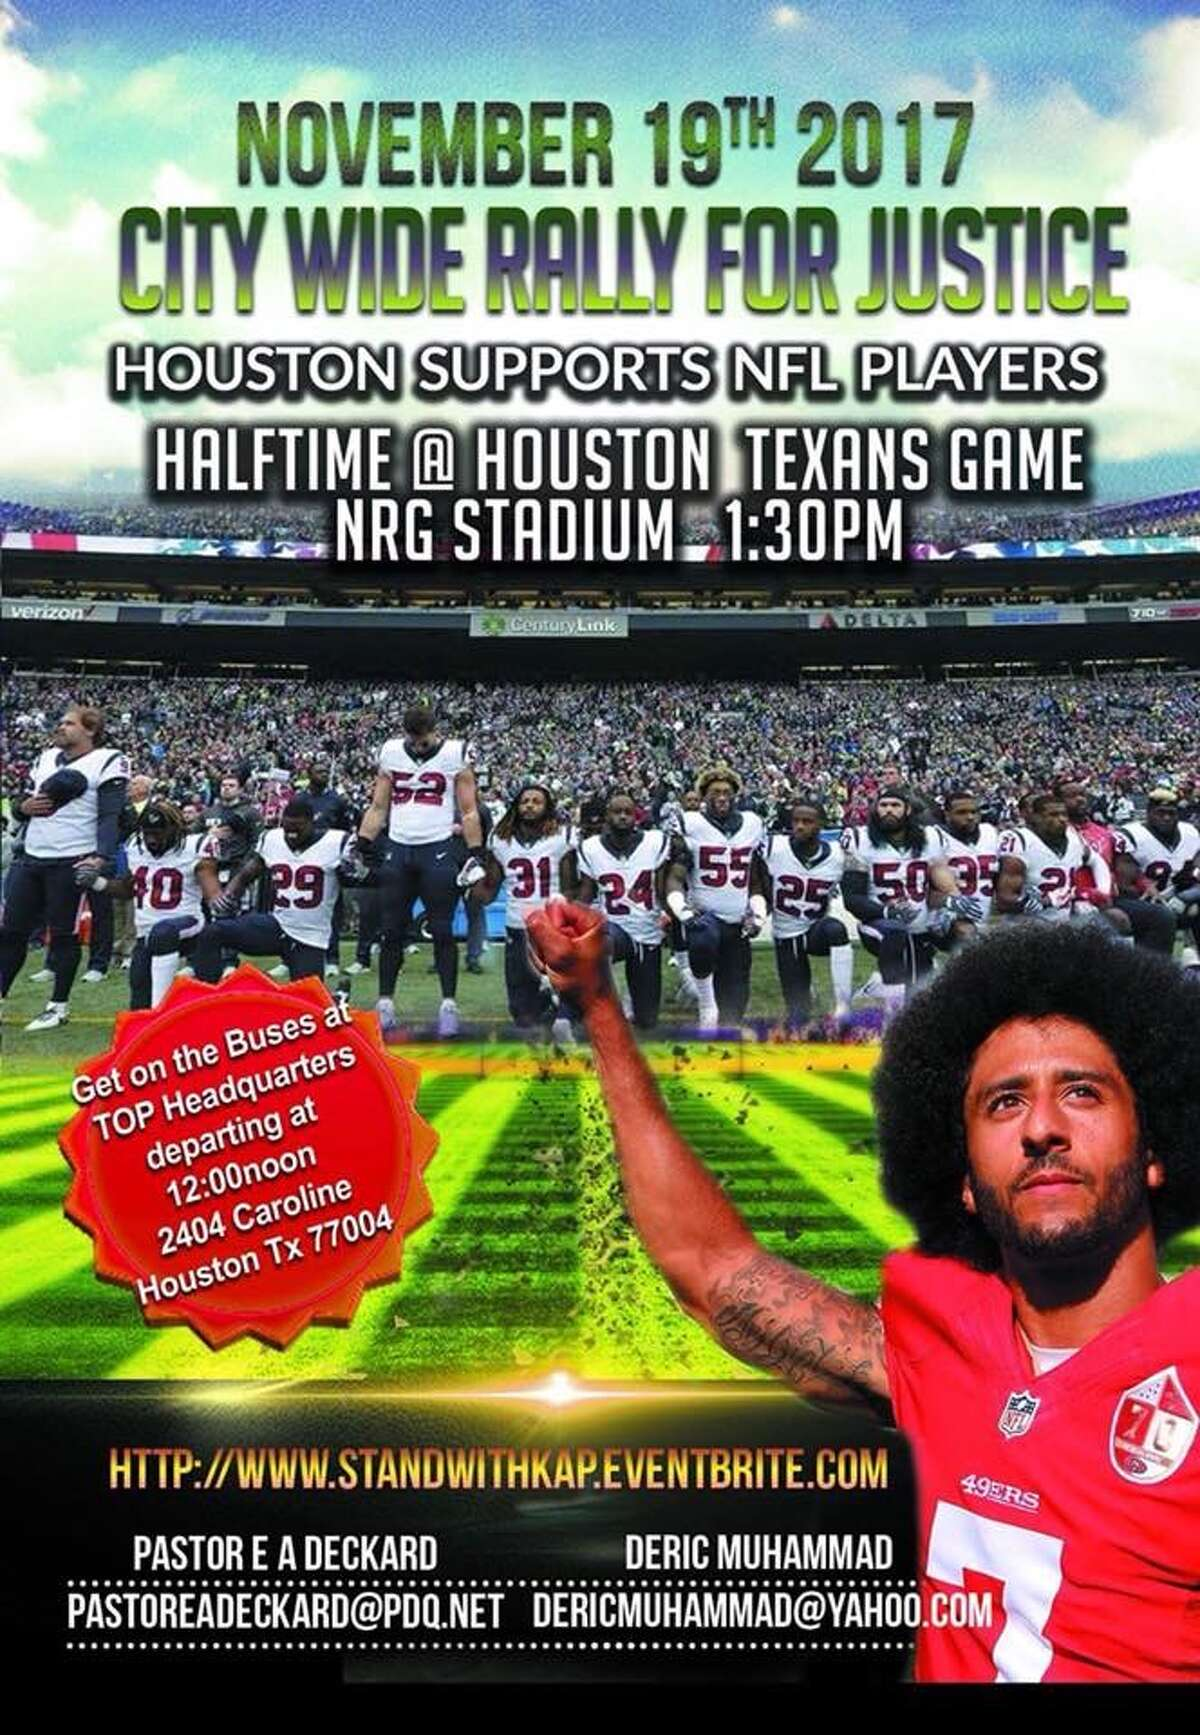 Community Activist Deric Muhammad said in a press release that he is organizing a rally to support NFL players protesting at NRG Stadium at 1:30 p.m. on Nov. 19, 2017.Scroll through the gallery ahead to see how NFL players responded to the protests.